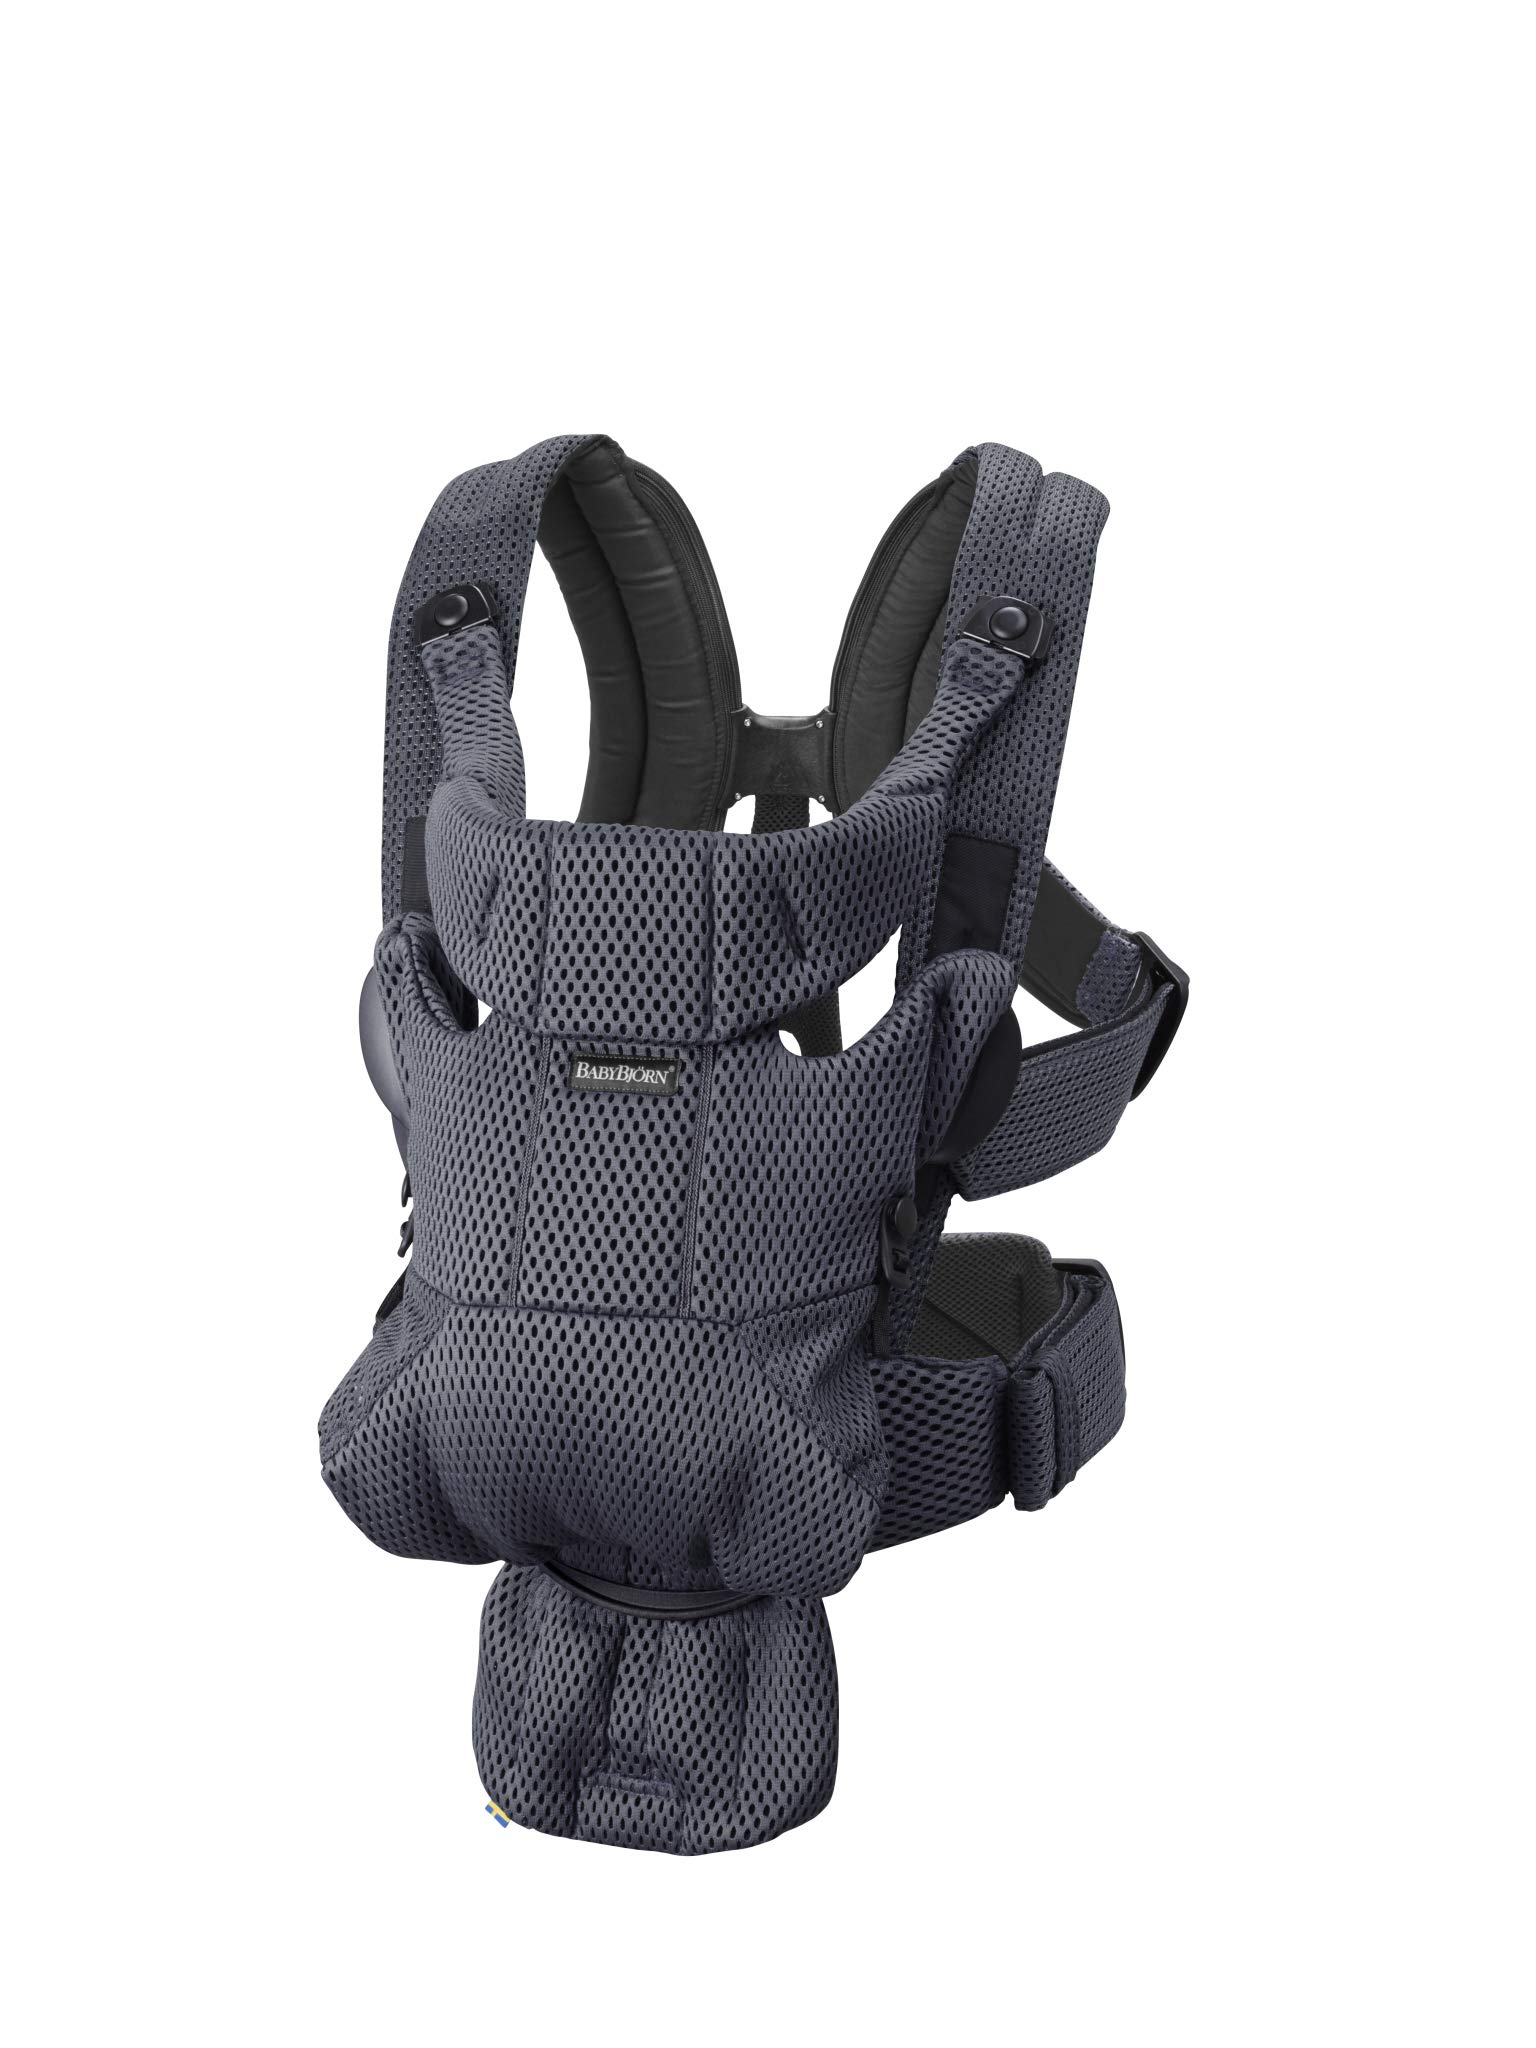 BABYBJÖRN Baby Carrier Move, 3D Mesh, Anthracite Baby Bjorn Excellent comfort with built-in back support and waist belt Easy to put on and take off Soft and airy design in cool 3D mesh 1